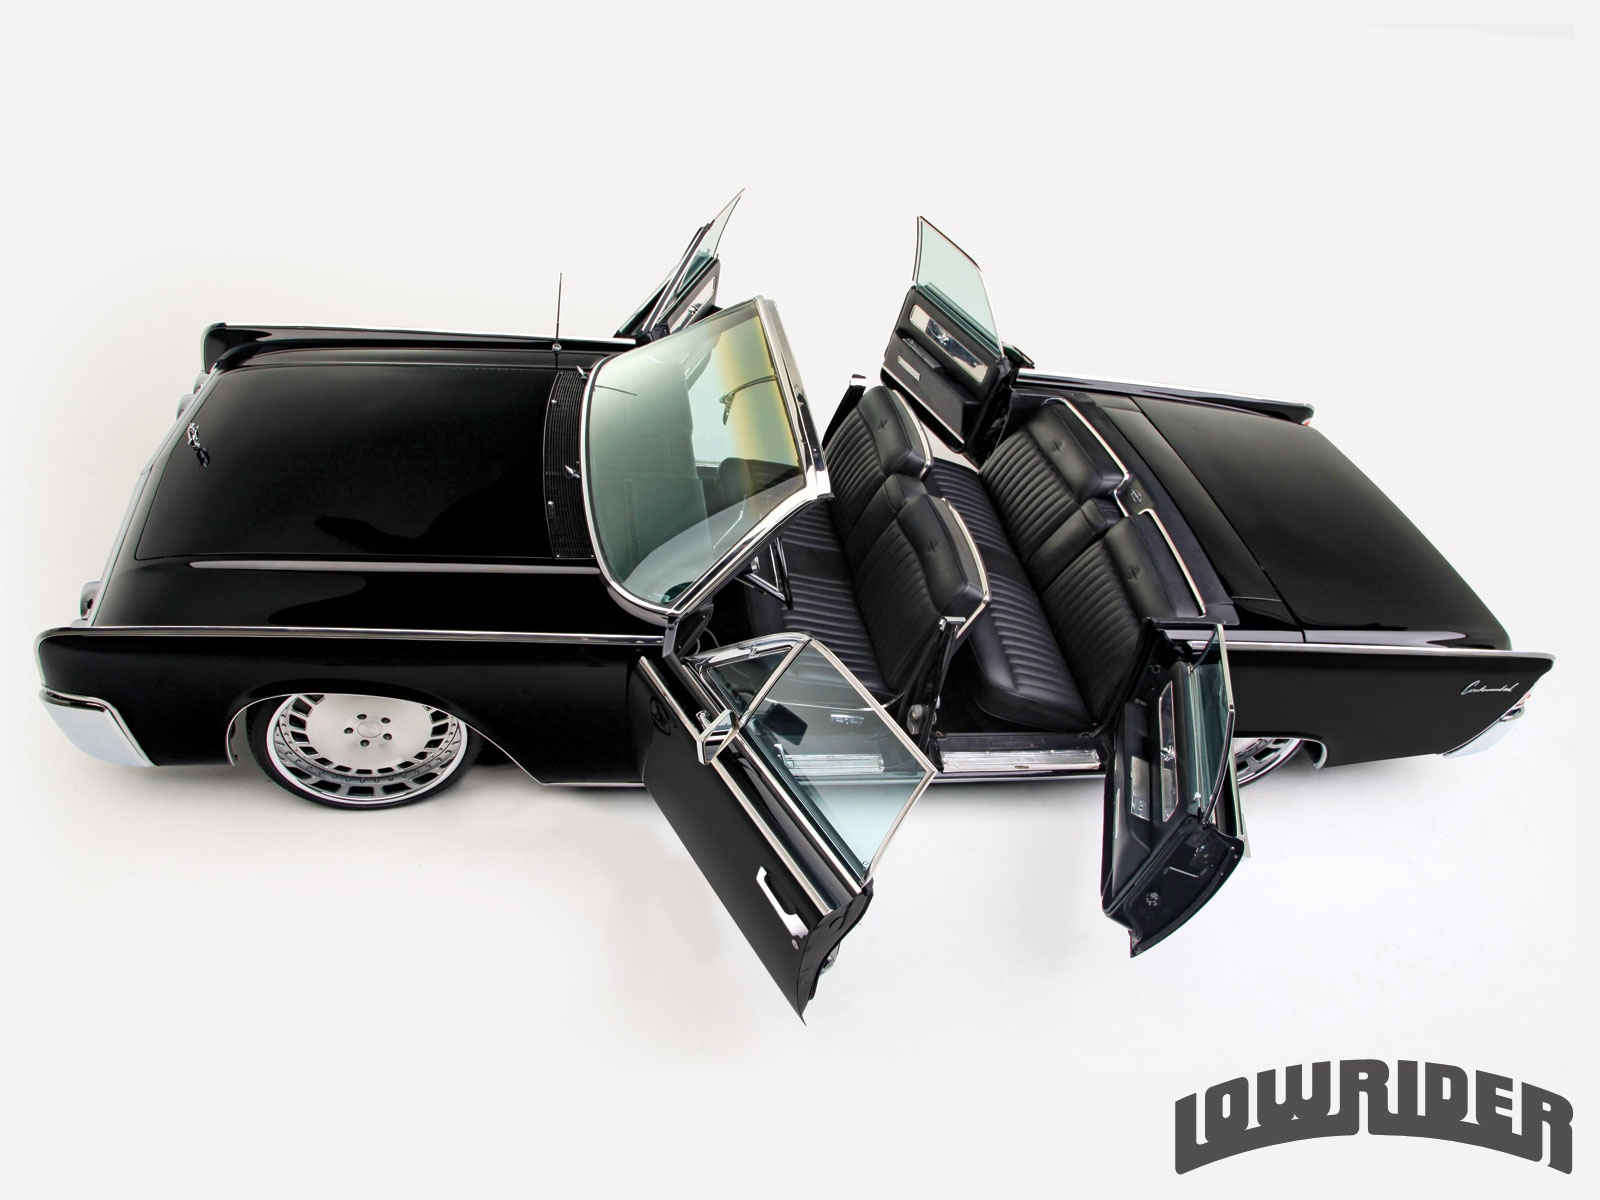 1212-lrmp-01-o-1963-lincoln-continental-convertible-suicide-doors & 1212-lrmp-01-o-1963-lincoln-continental-convertible-suicide-doors ...